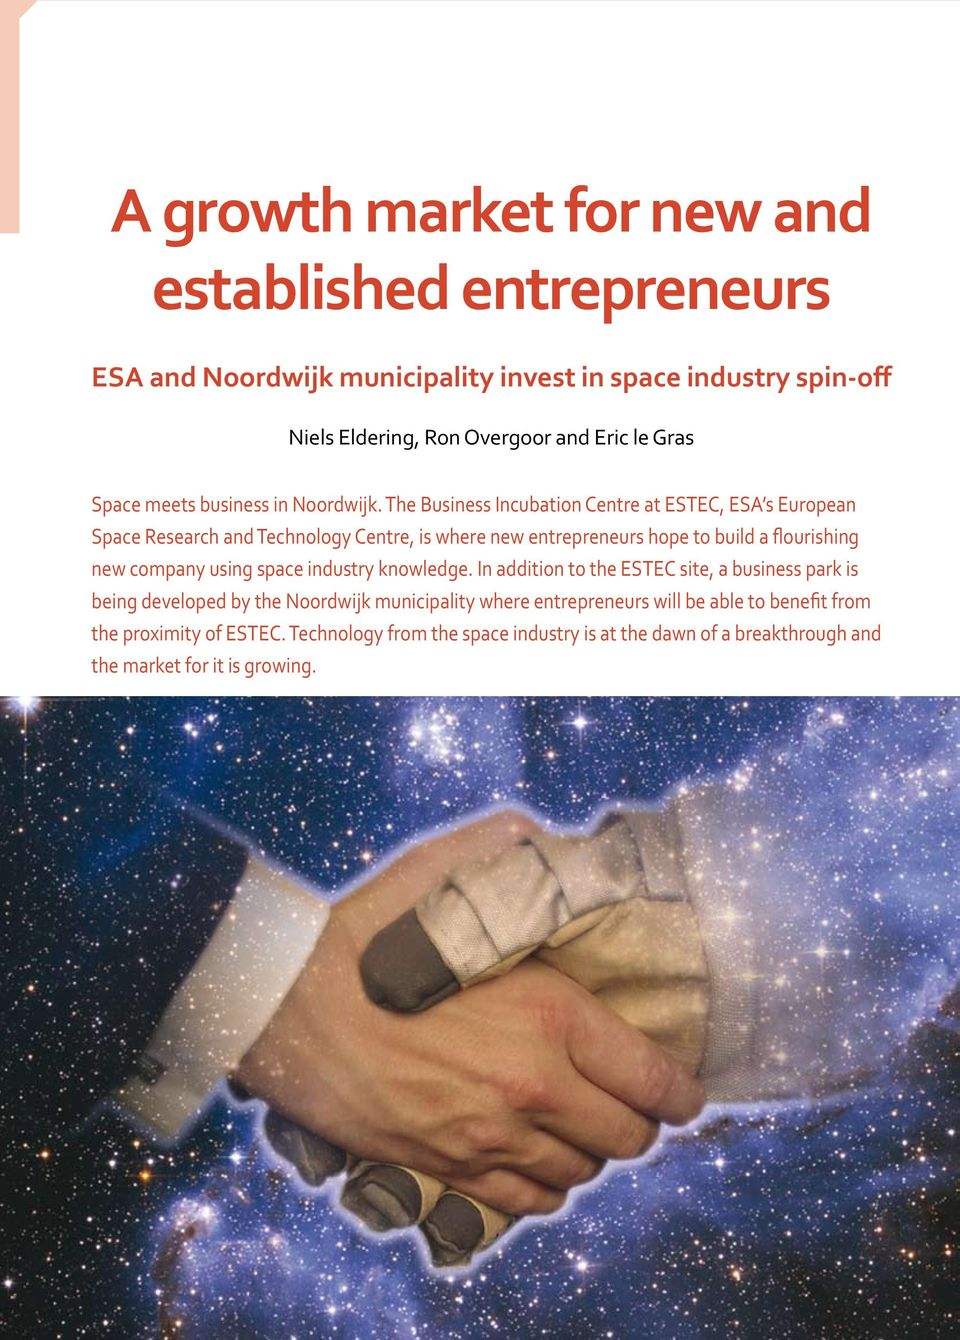 The Business Incubation Centre at ESTEC, ESA s European Space Research and Technology Centre, is where new entrepreneurs hope to build a flourishing new company using